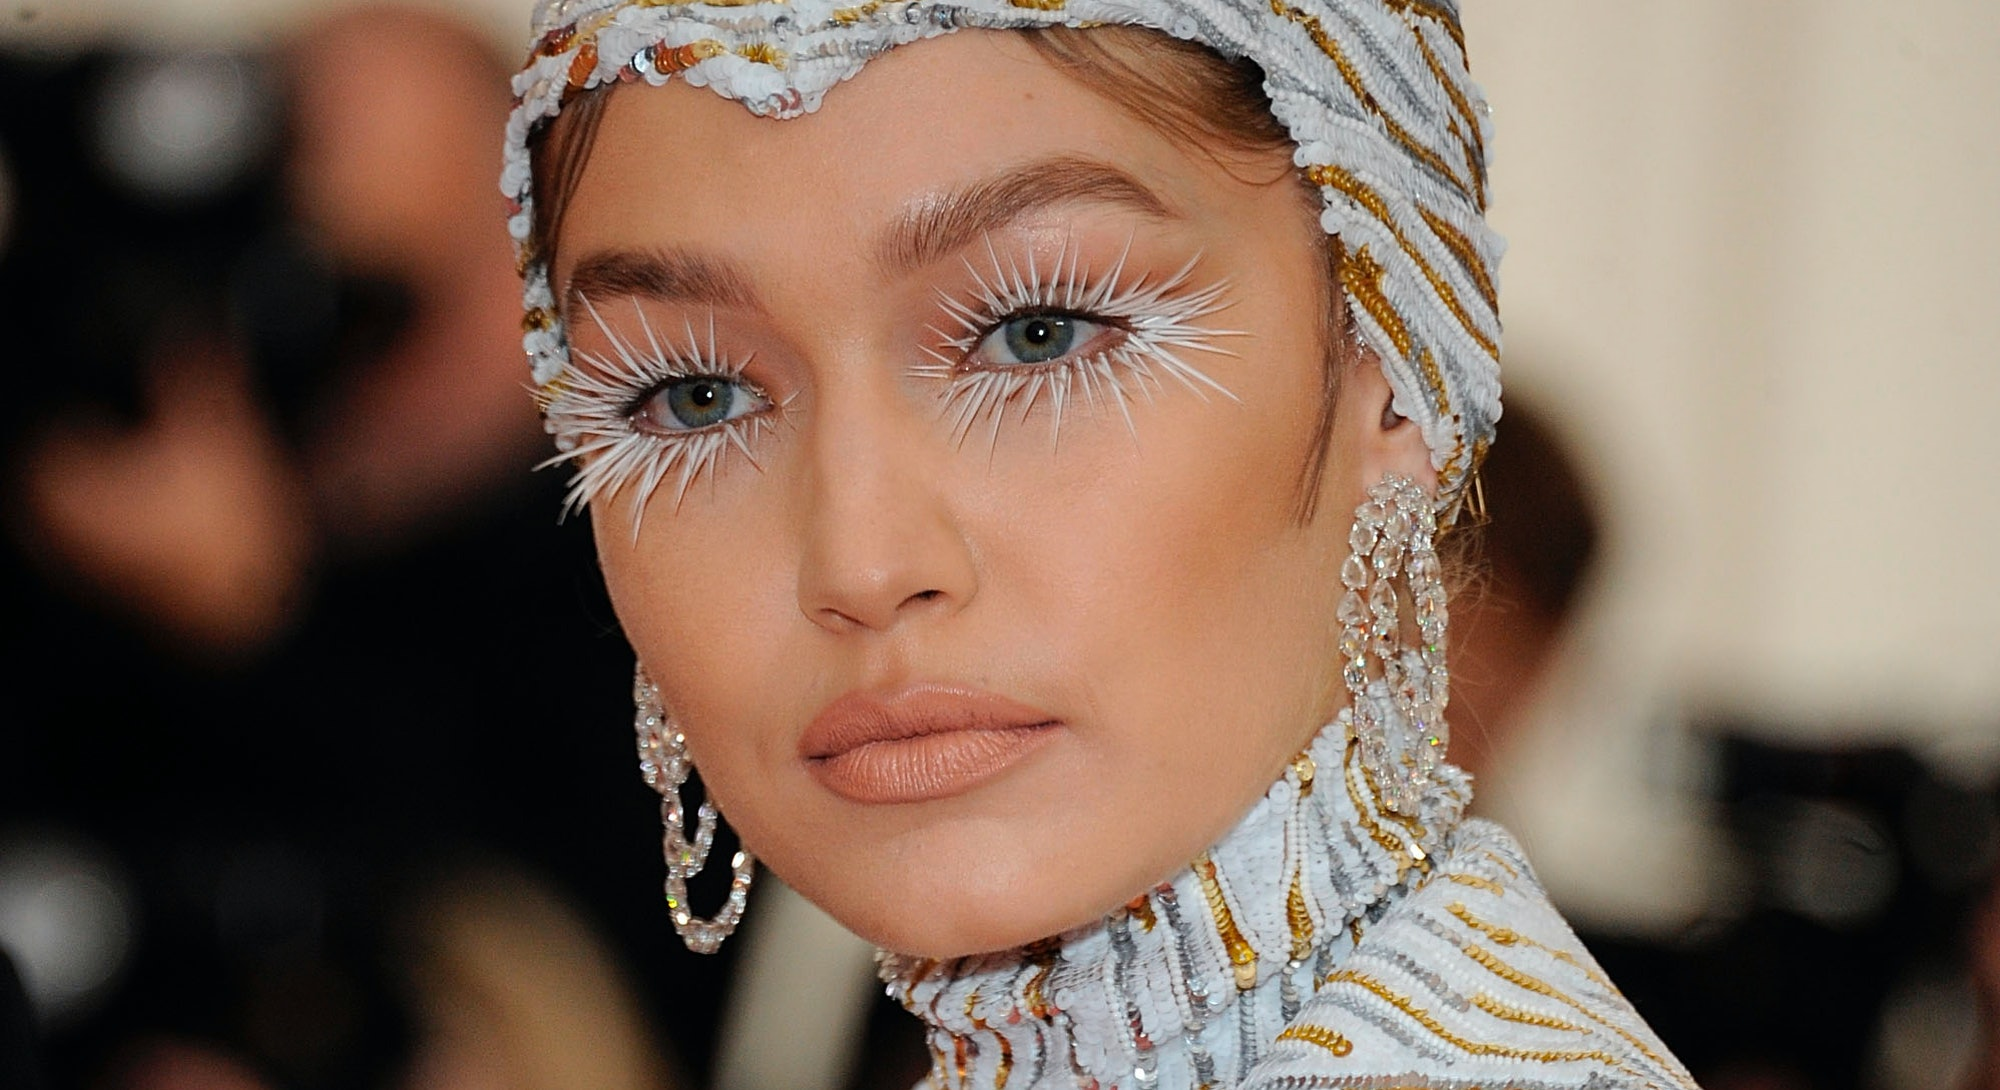 Gigi Hadid rocked one of the greatest Met Gala makeup looks of all time.